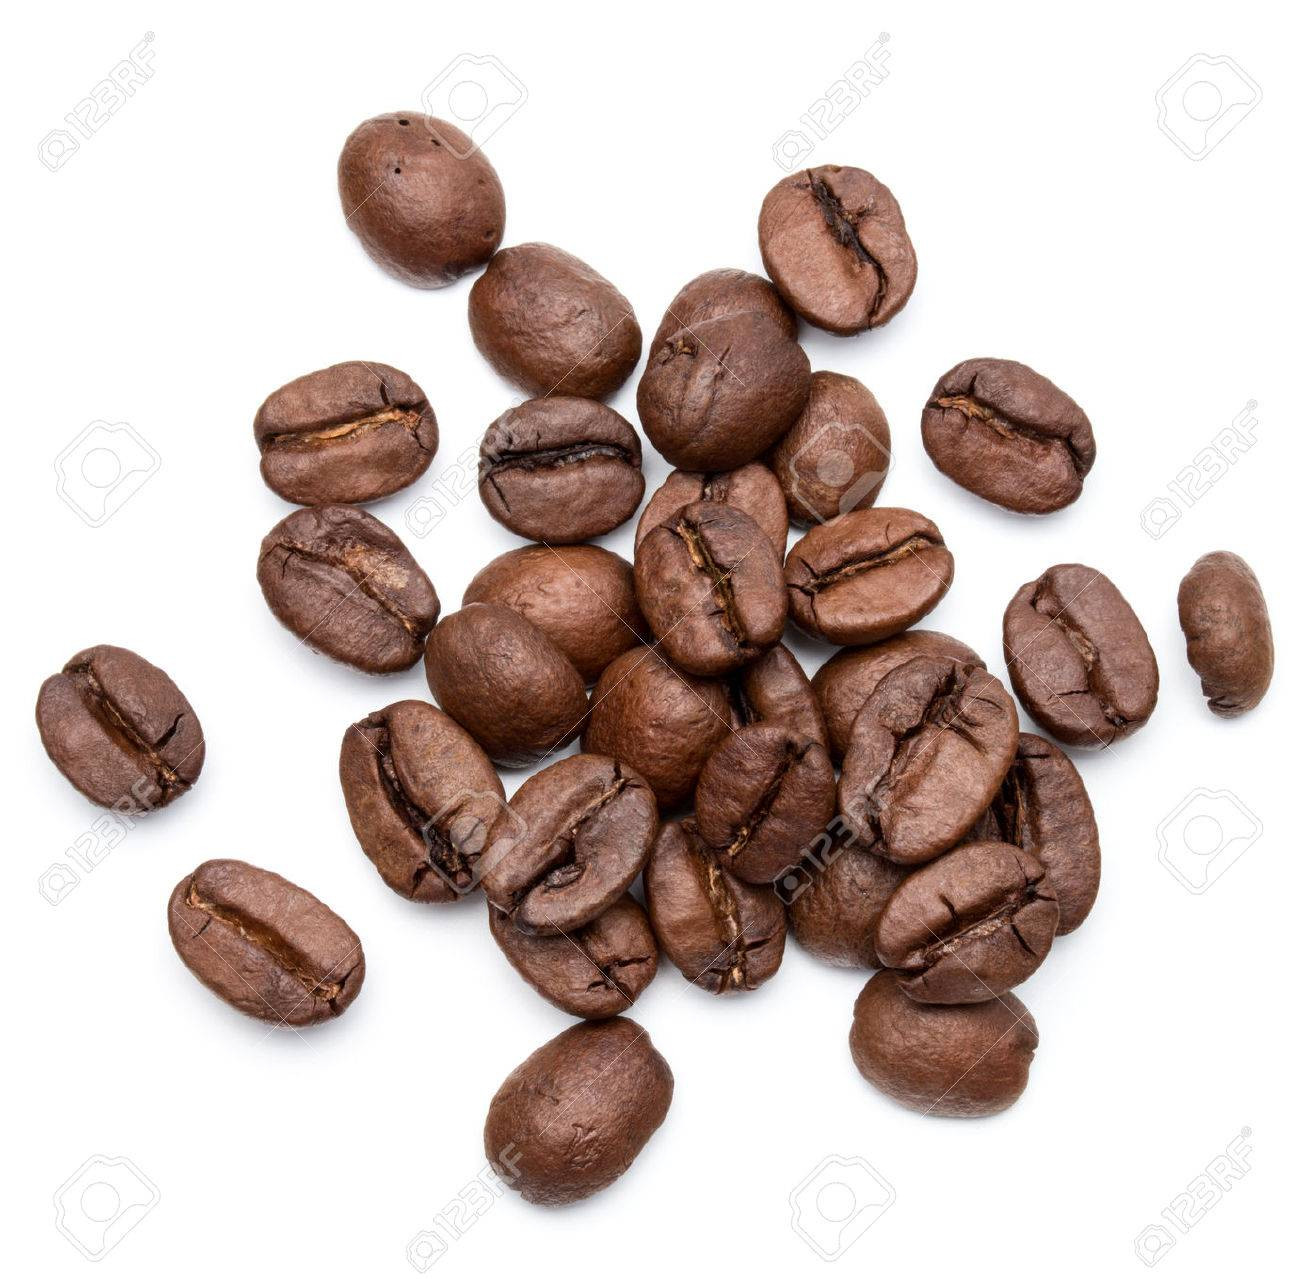 42123254-roasted-coffee-beans-isolated-i